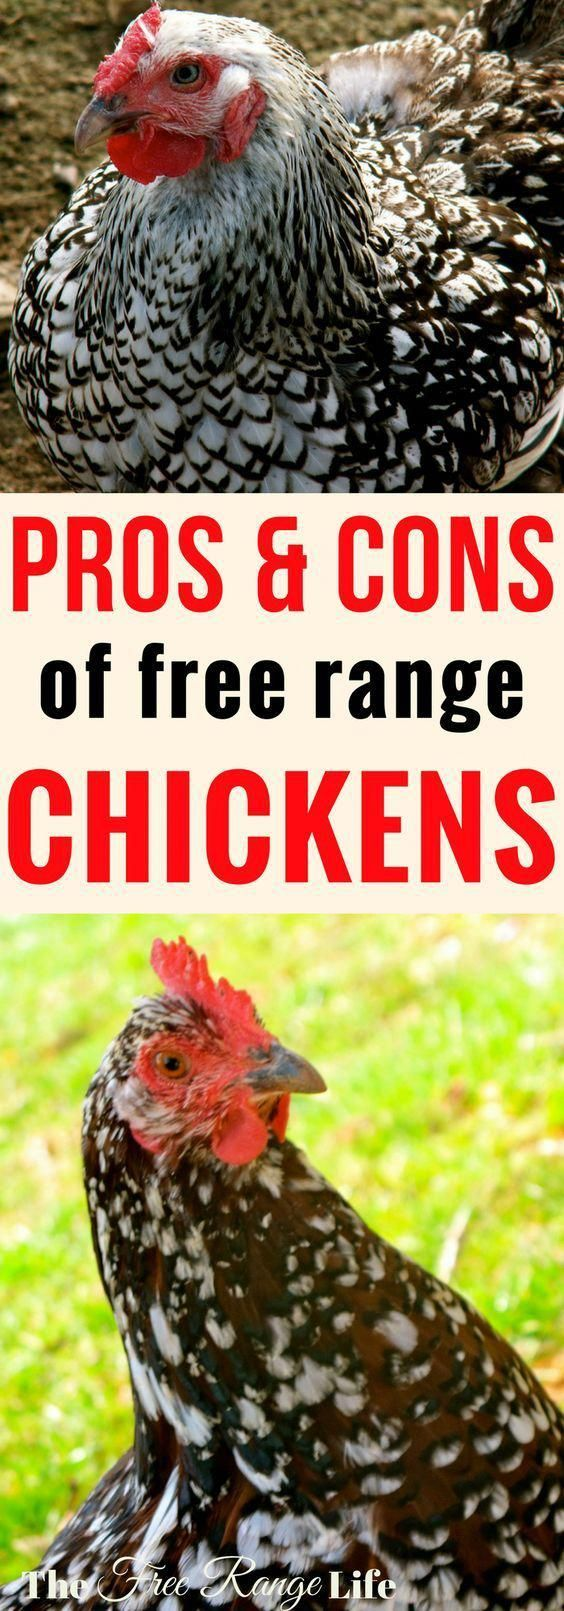 The Pros and Cons of Free Range Chickens | Chickens ...